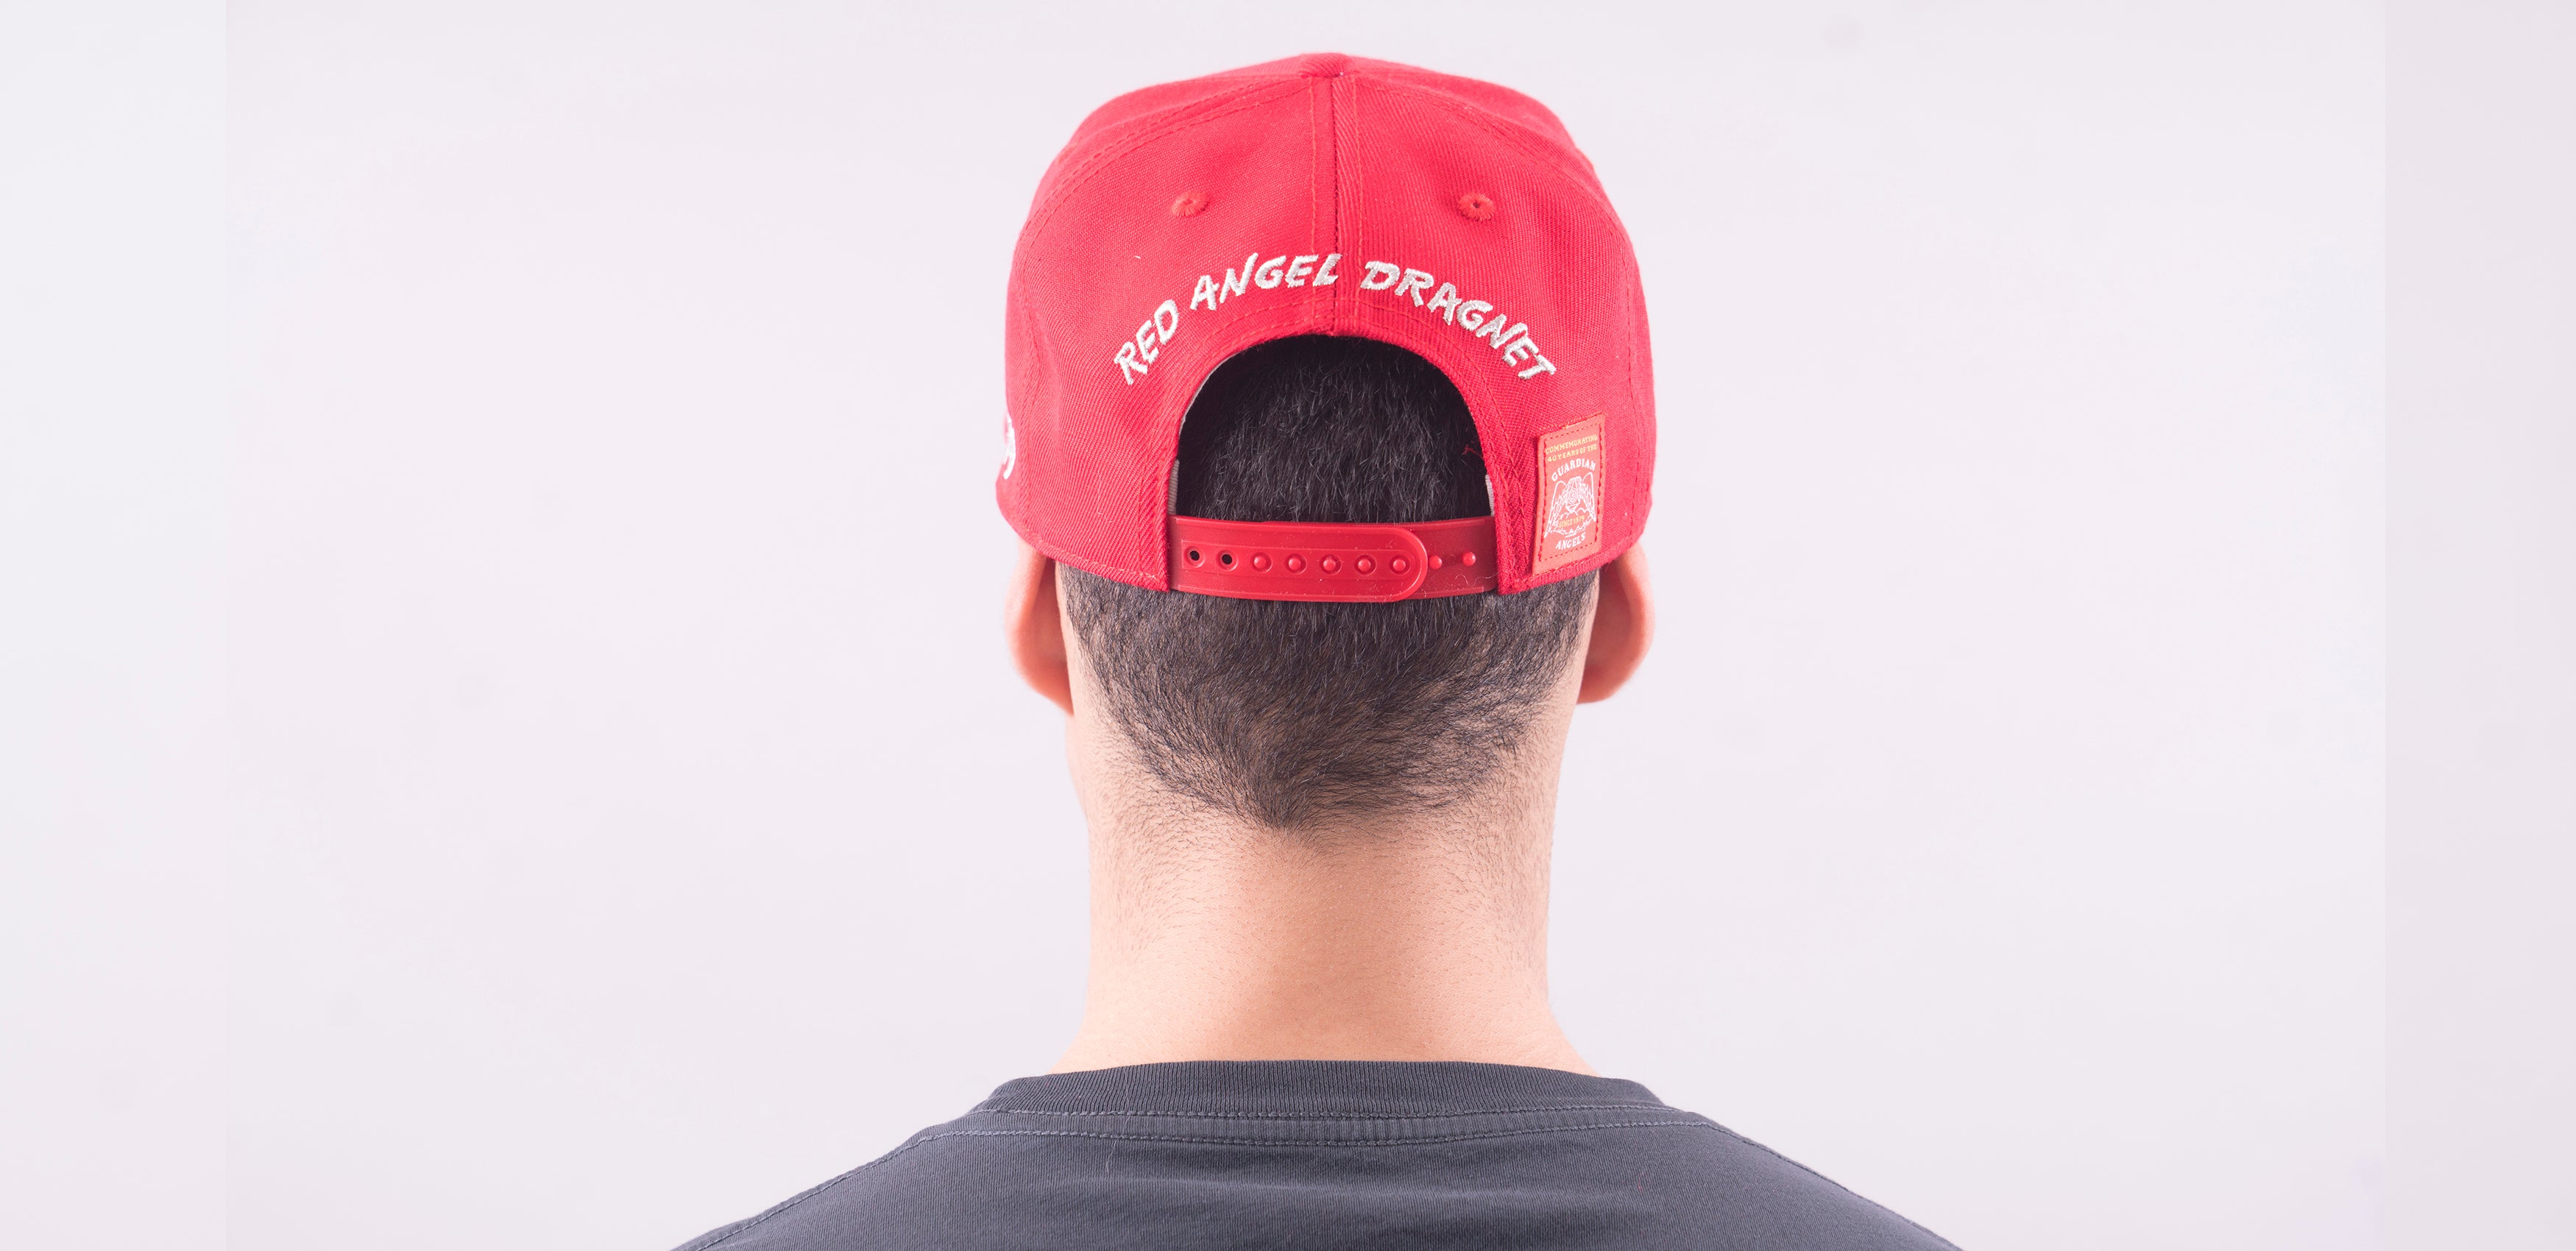 Guardian Angels Red Angel Dragnet Snapback Hat